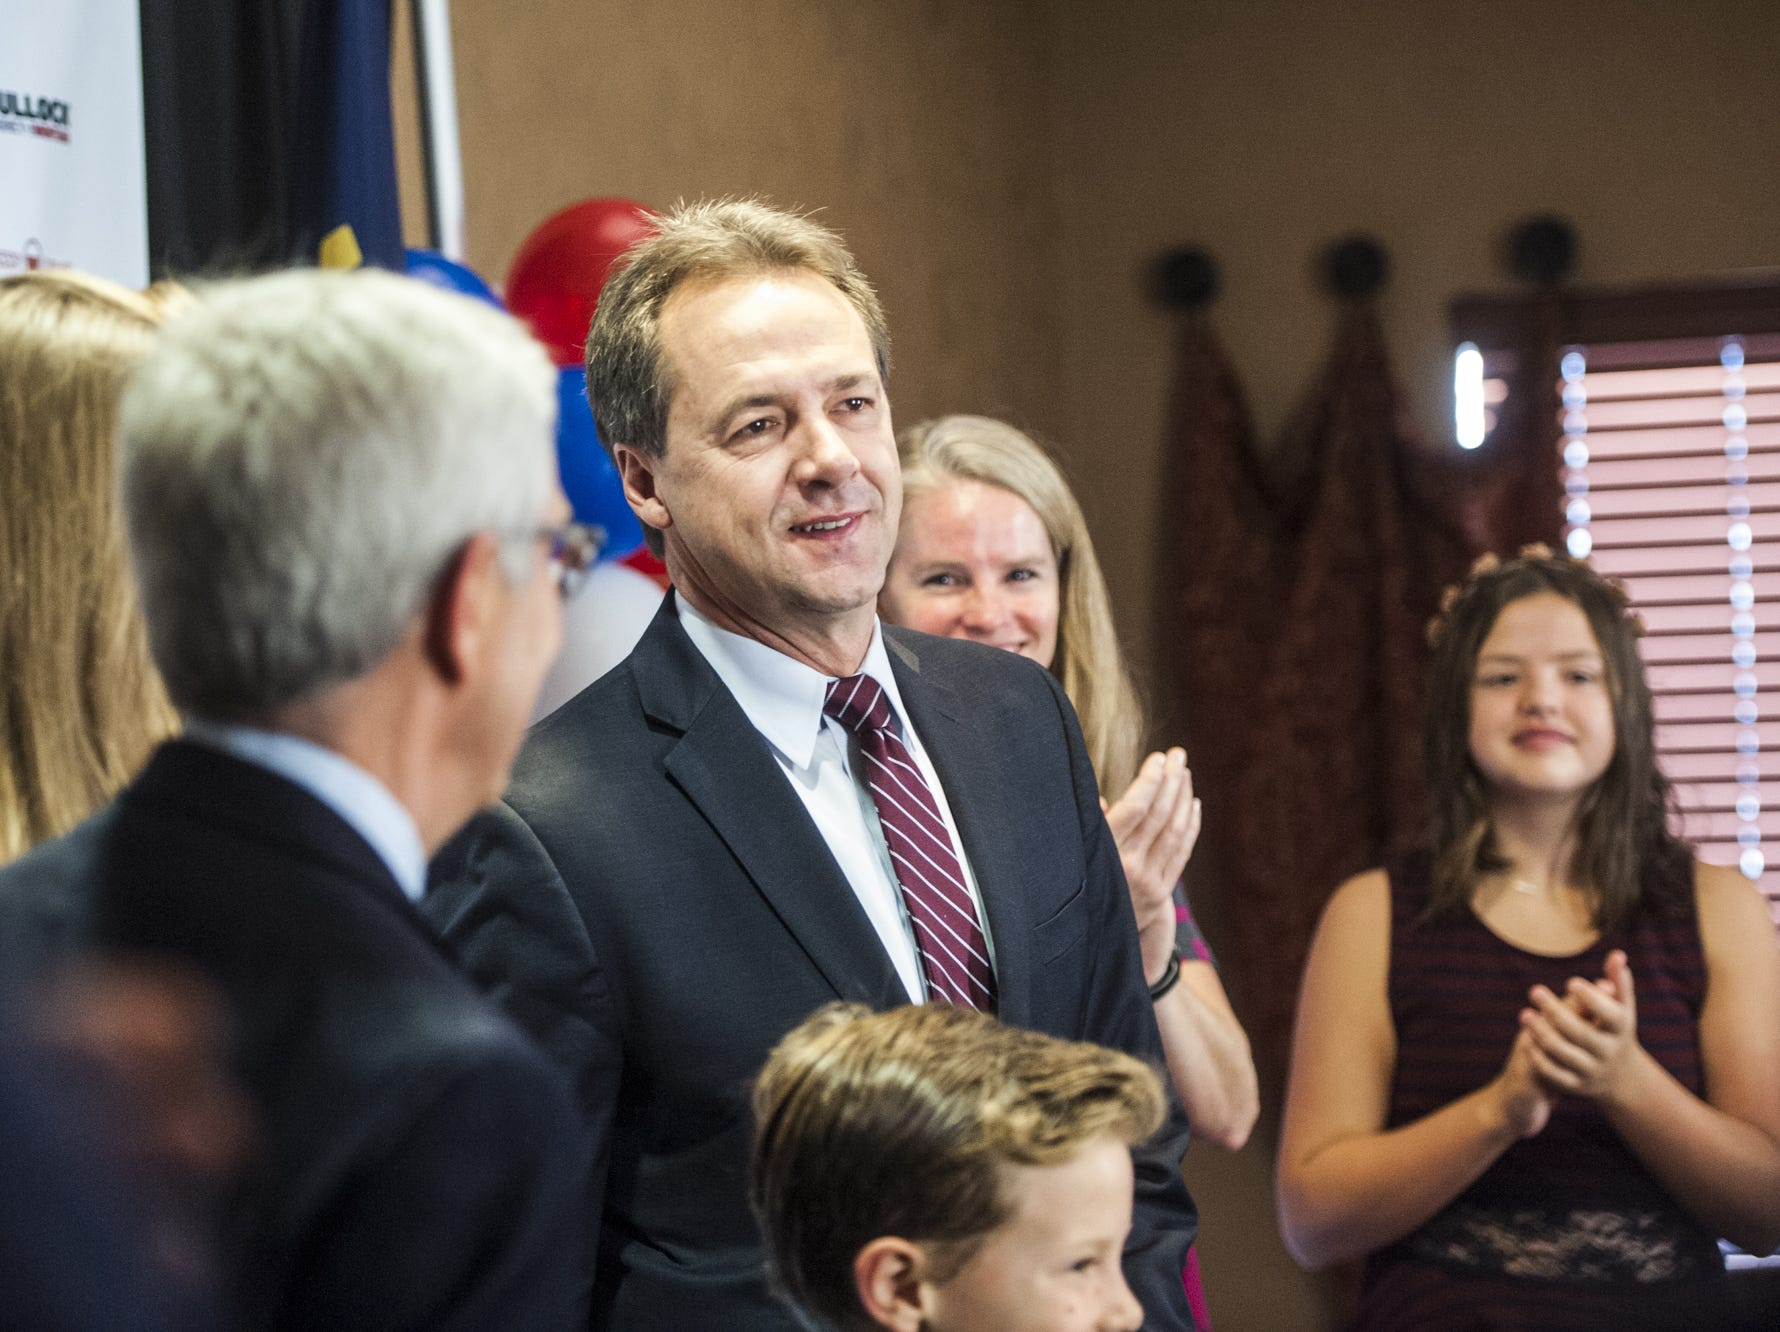 TRIBUNE PHOTO/JULIA MOSS Gov. Steve Bullock, center, talks with Lt. Gov. Mike Cooney on Wednesday while meeting with supporters and press at the Best Western Premier Helena Great Northern Hotel. Governor Bullock gives his acceptance speech to supporters and press at the Best Western Premier Helena Great Northern Hotel Wednesday morning.